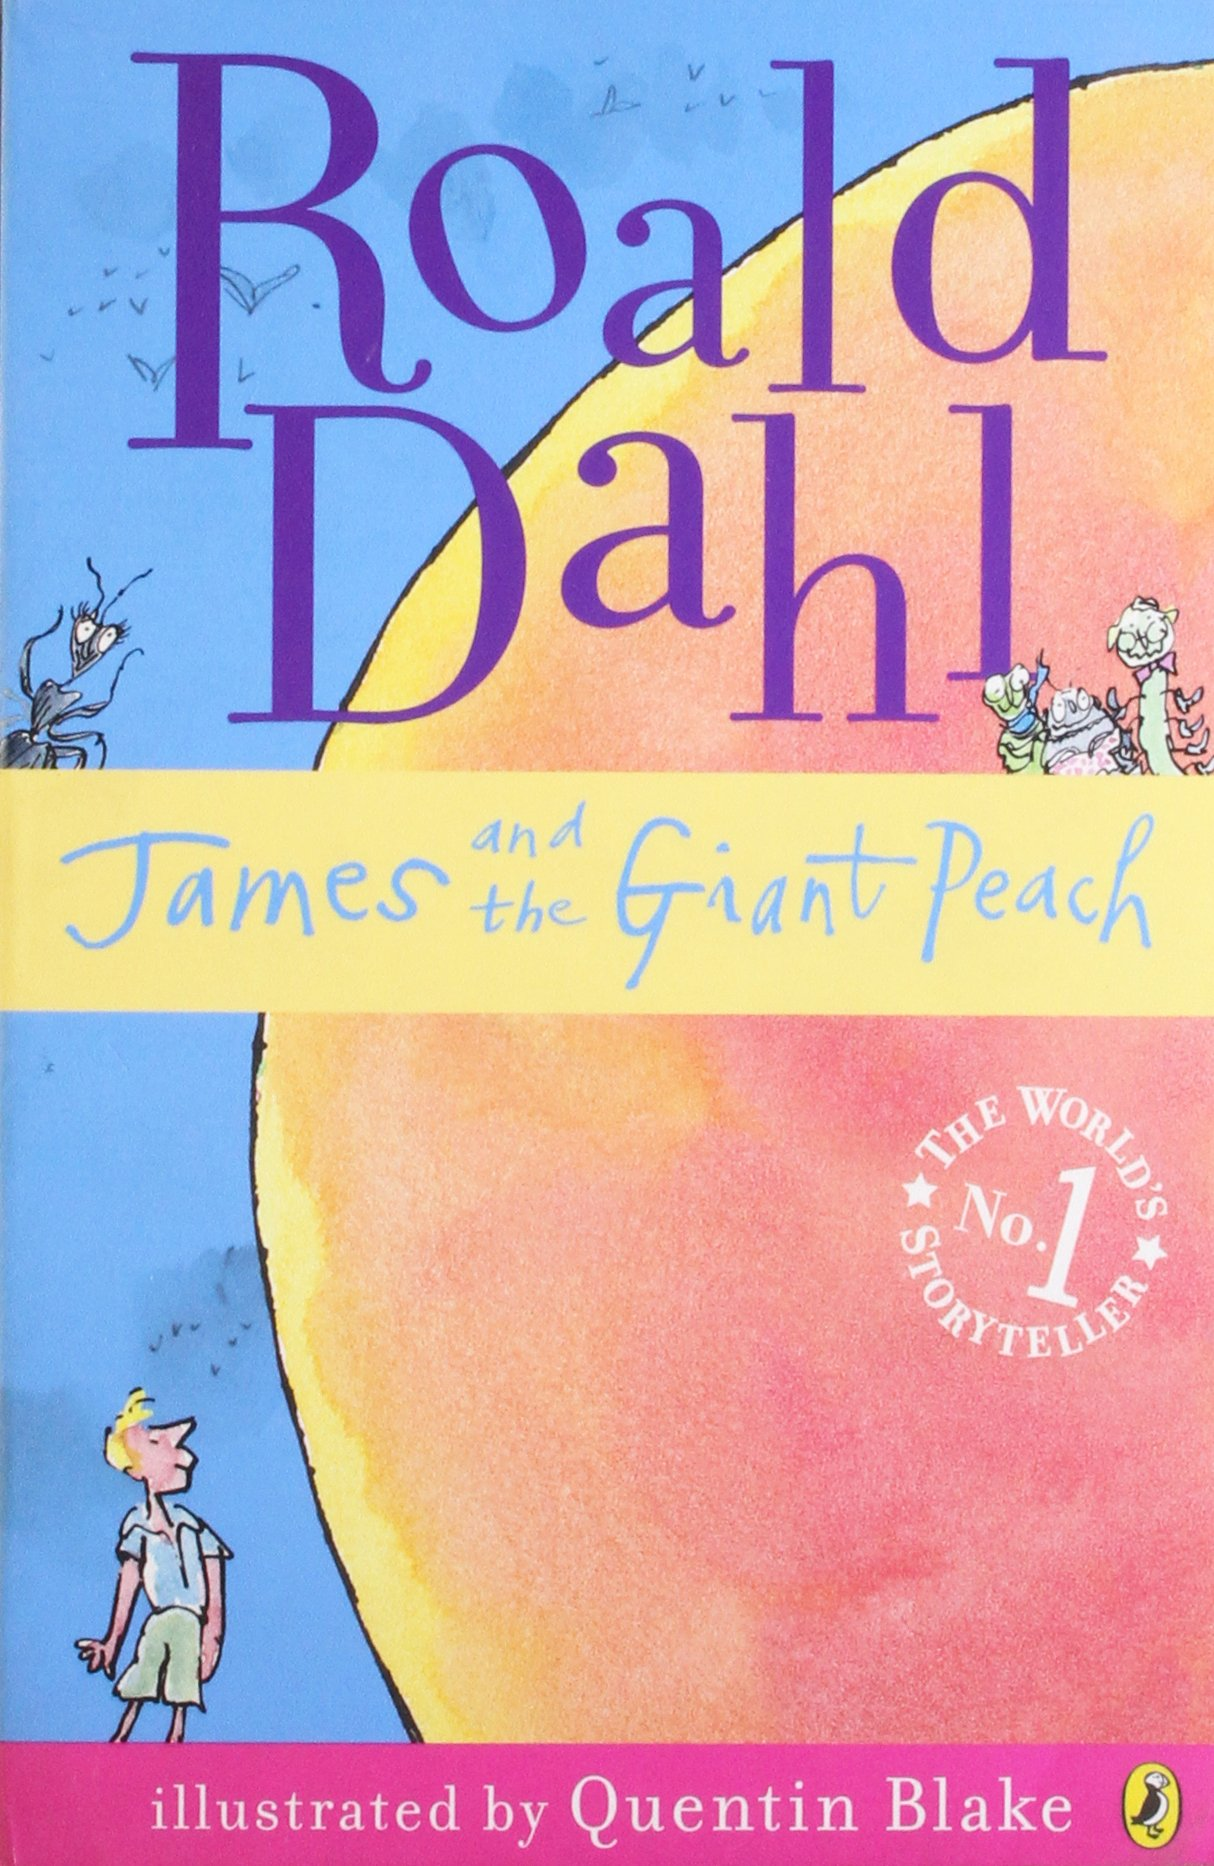 Book Cover for James and the Giant Peach by Roald Dahl showing a small James in the bottom left corner, staring up at a giant peach taking up the majority of the cover